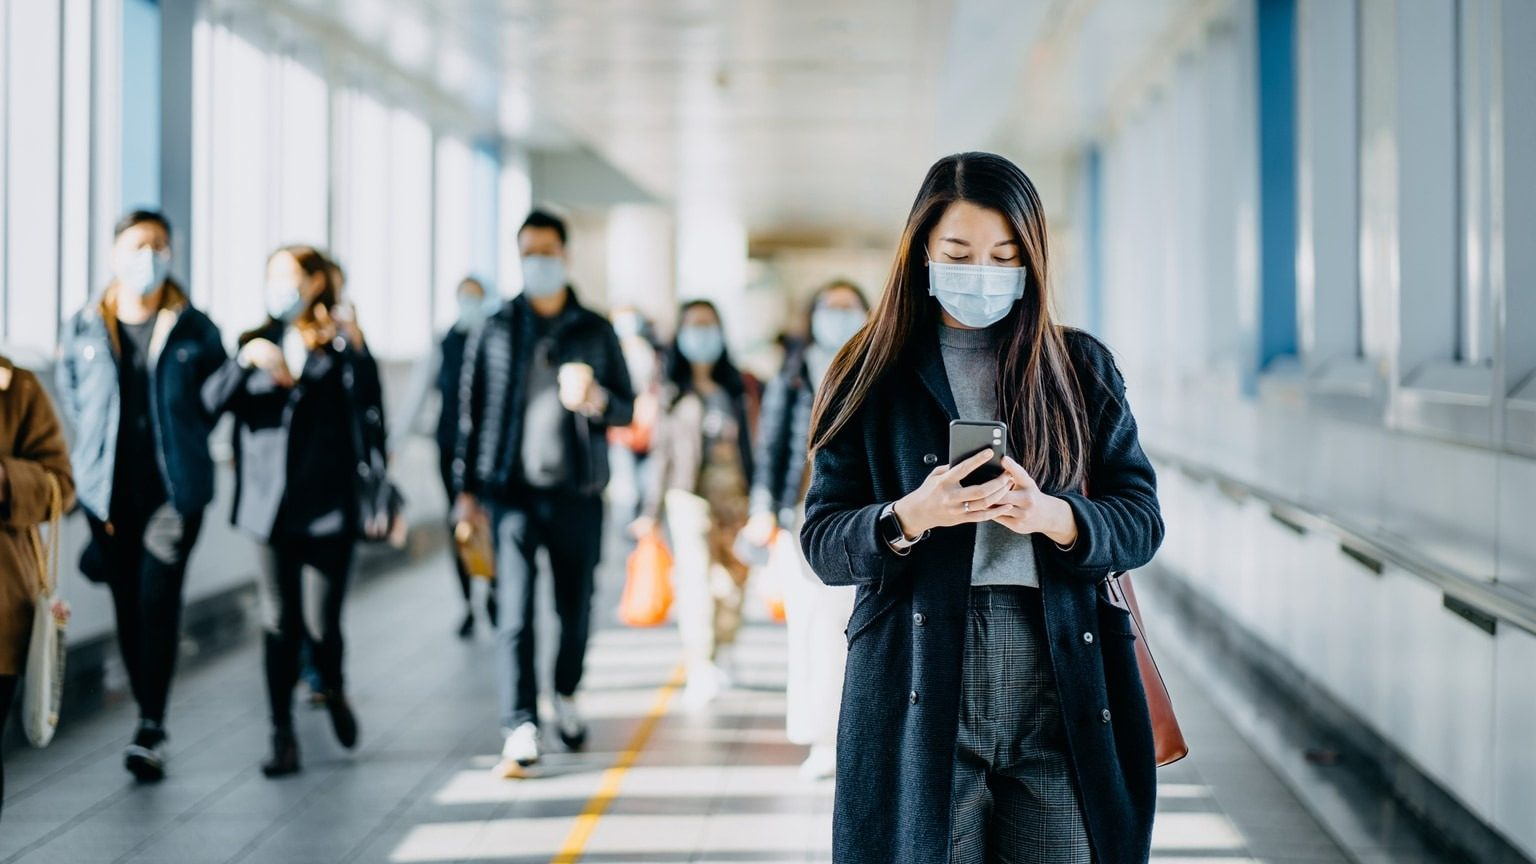 Woman walking through airport wearing a protective face mask